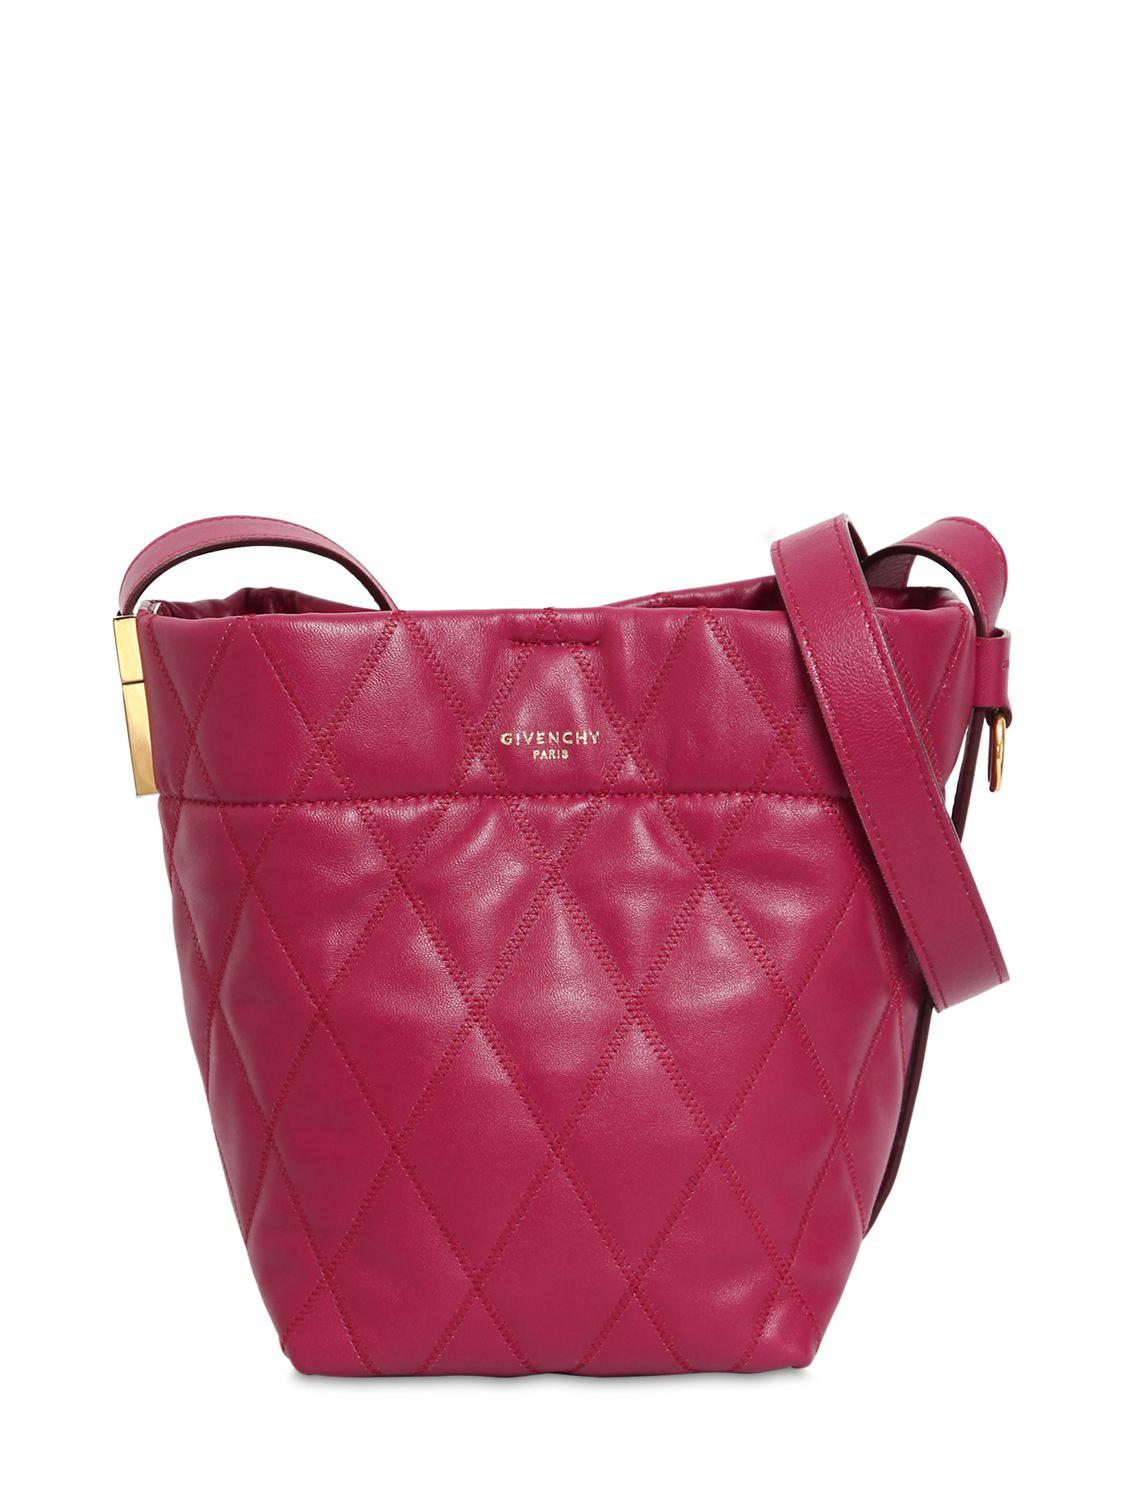 30321d6b4482 Givenchy Mini Gv Quilted Leather Bucket Bag in Purple - Lyst